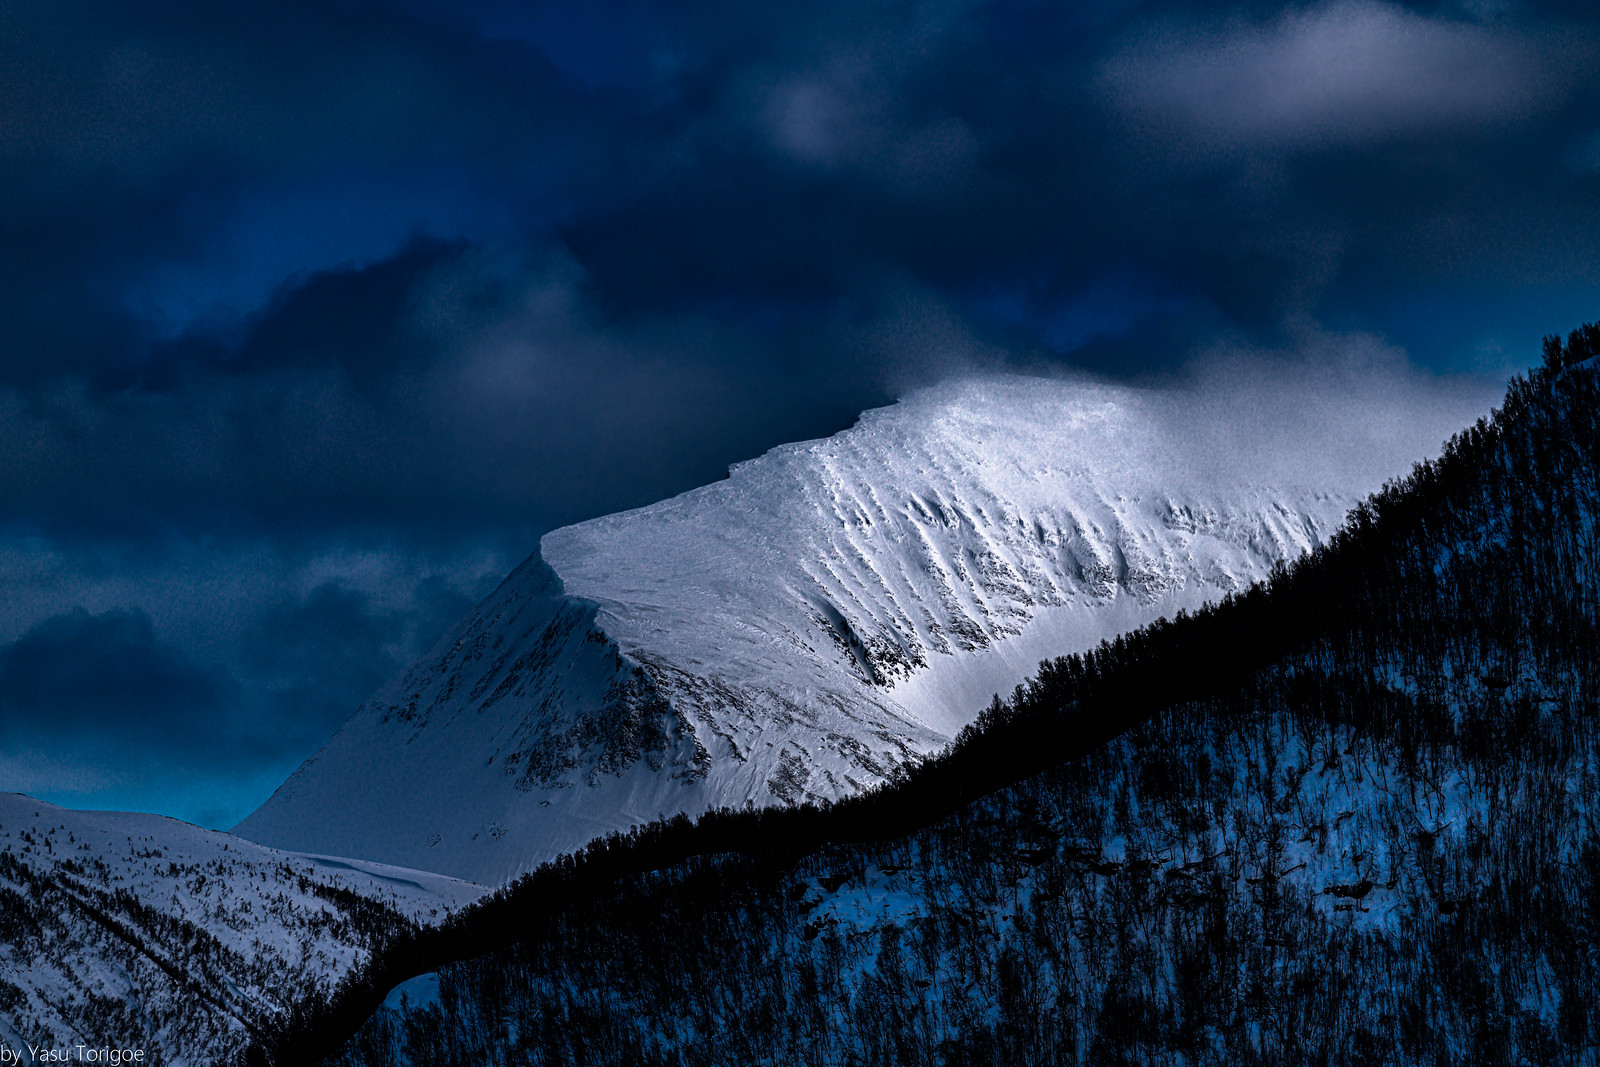 This is Tromsdalstinden, a prominent peak east of Tromso, Norway- 51